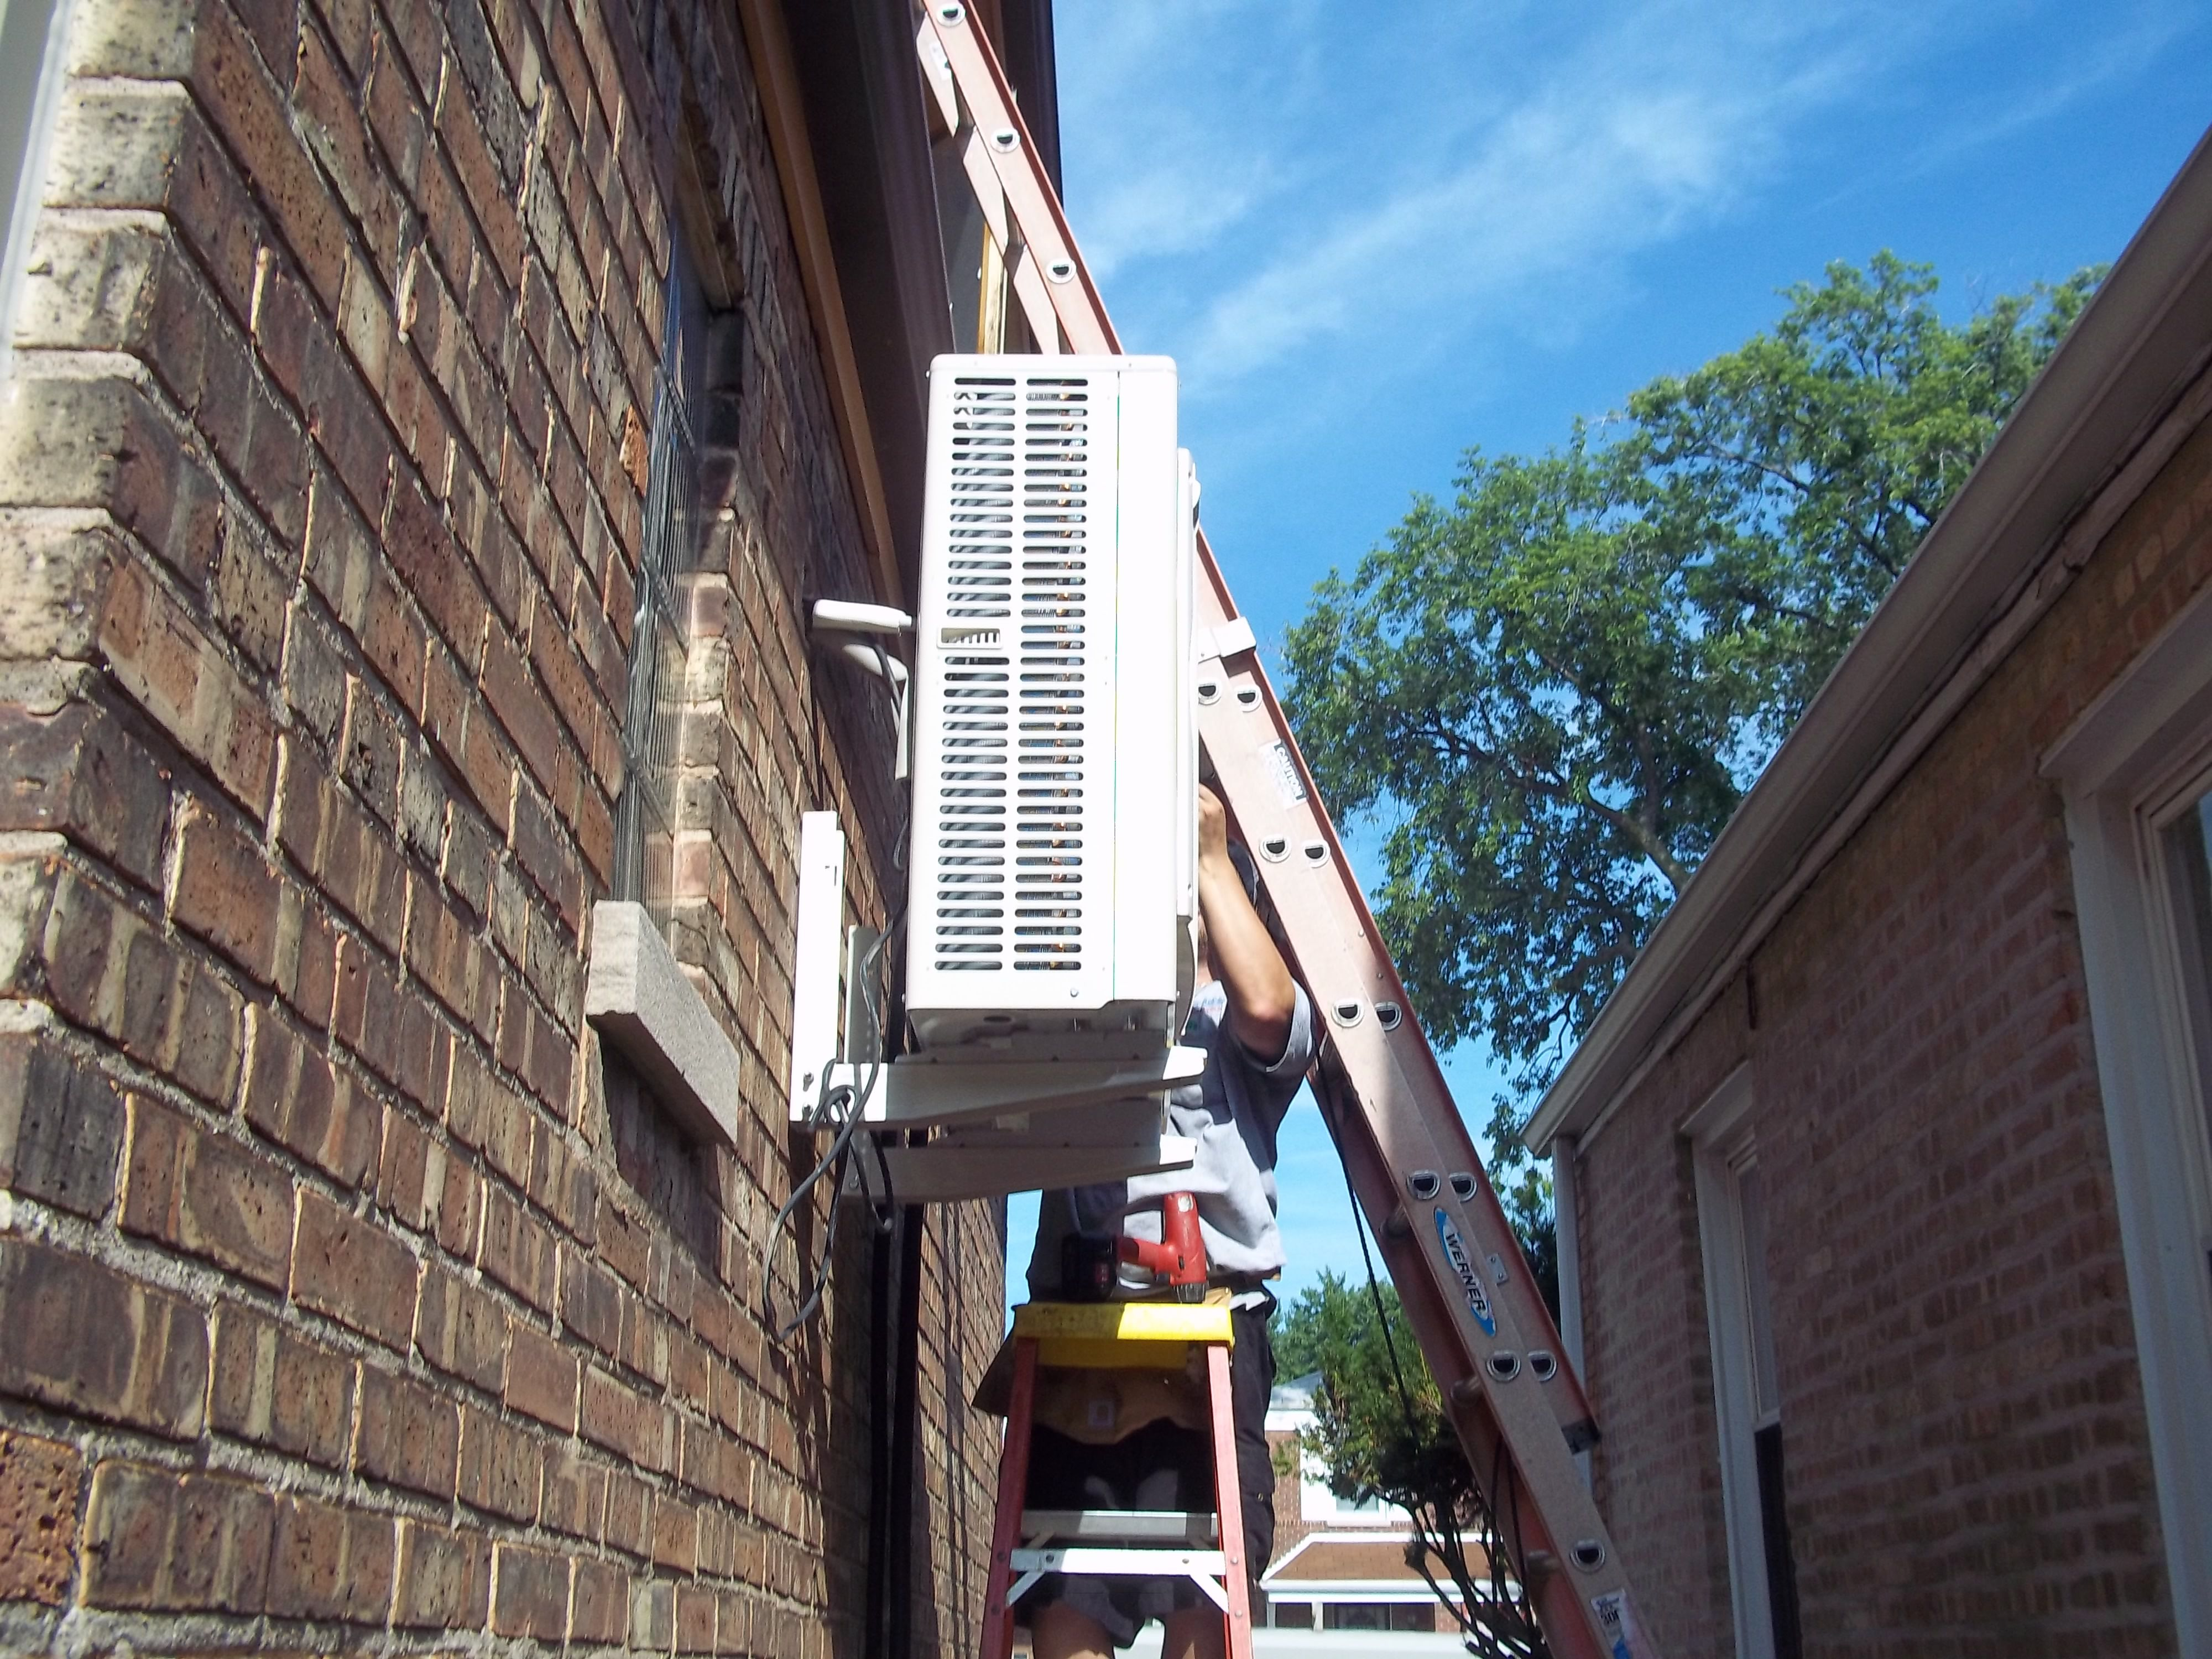 Mitsubishi Ductless Multi Zone Ductlessairconditioning Heating